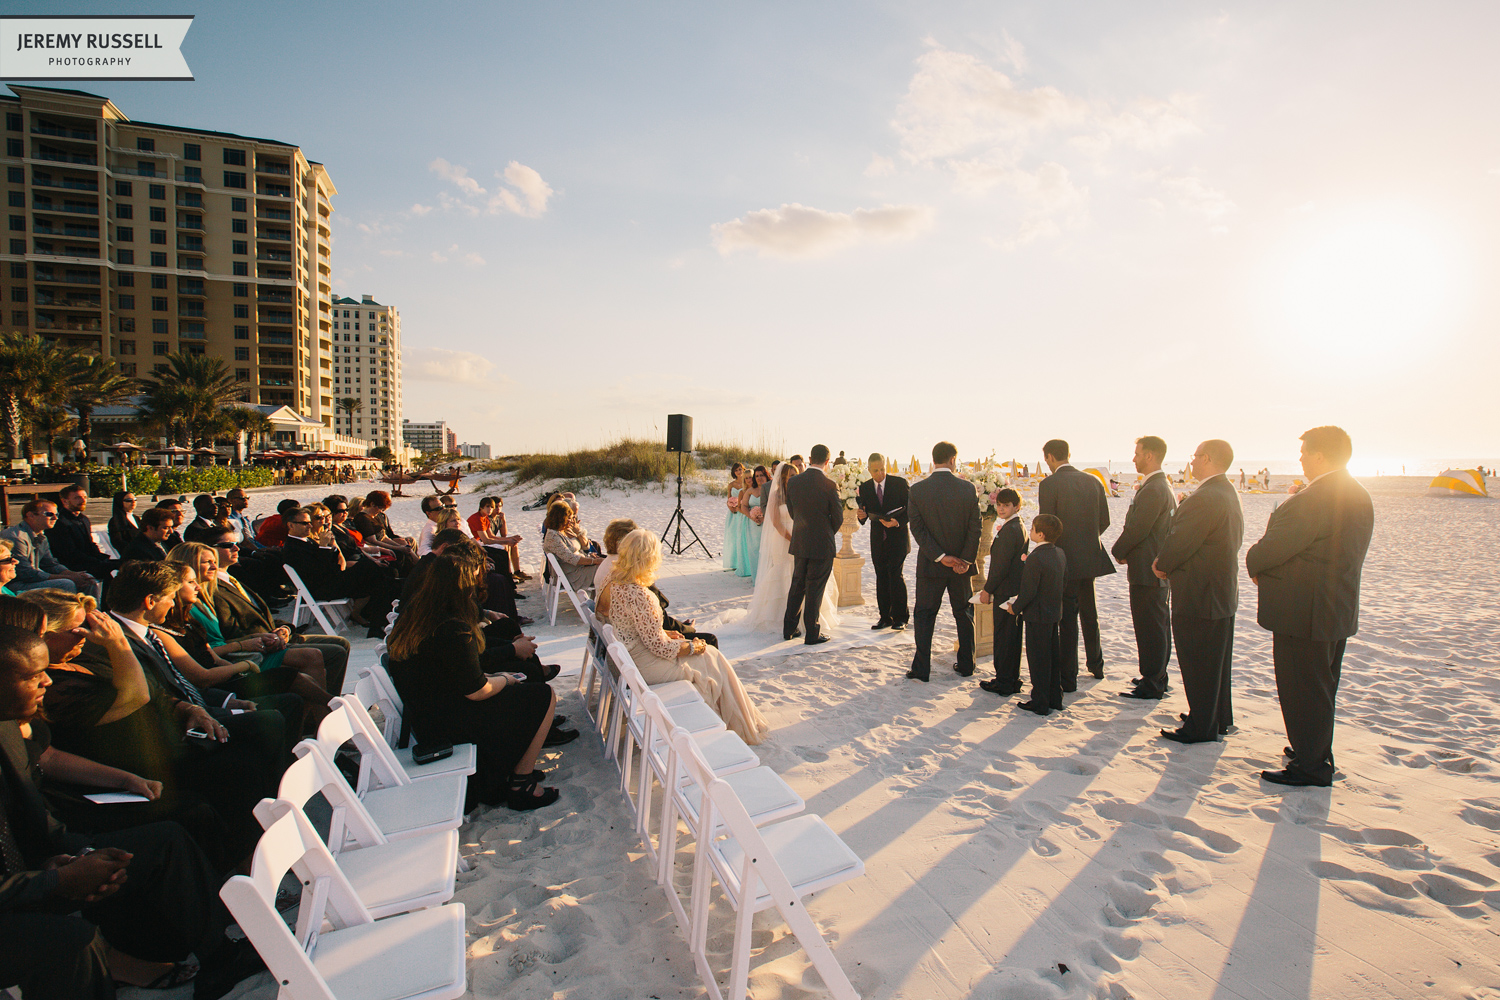 Jeremy-Russell-13-Florida-Beach-Wedding-041.jpg